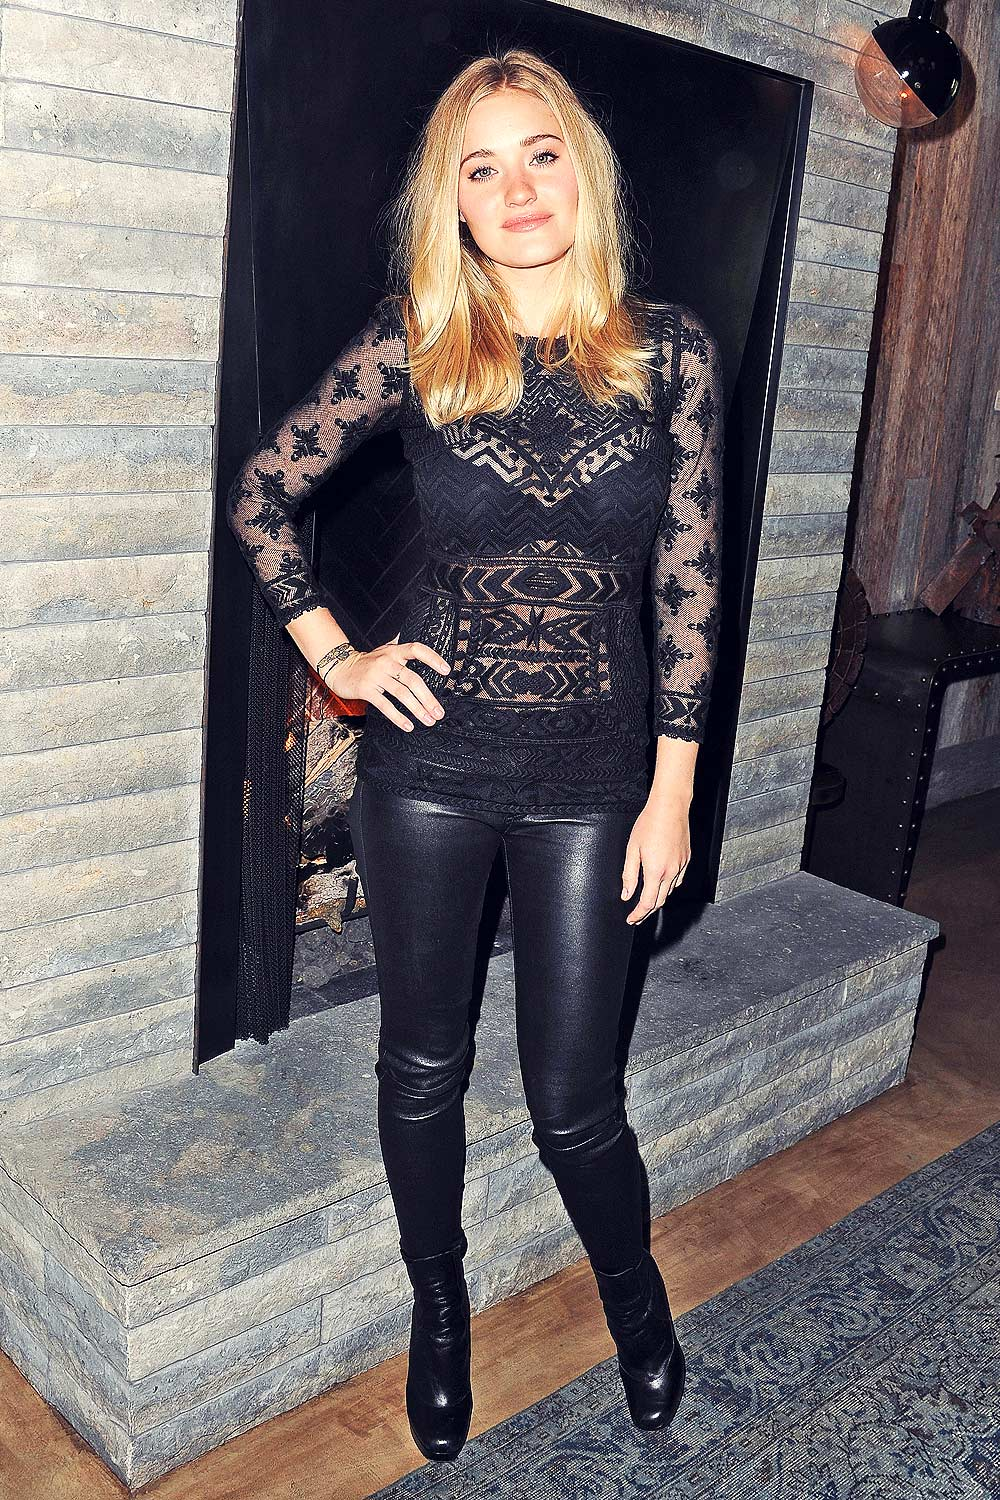 AJ Michalka attends the screening of Weepah Way For Now